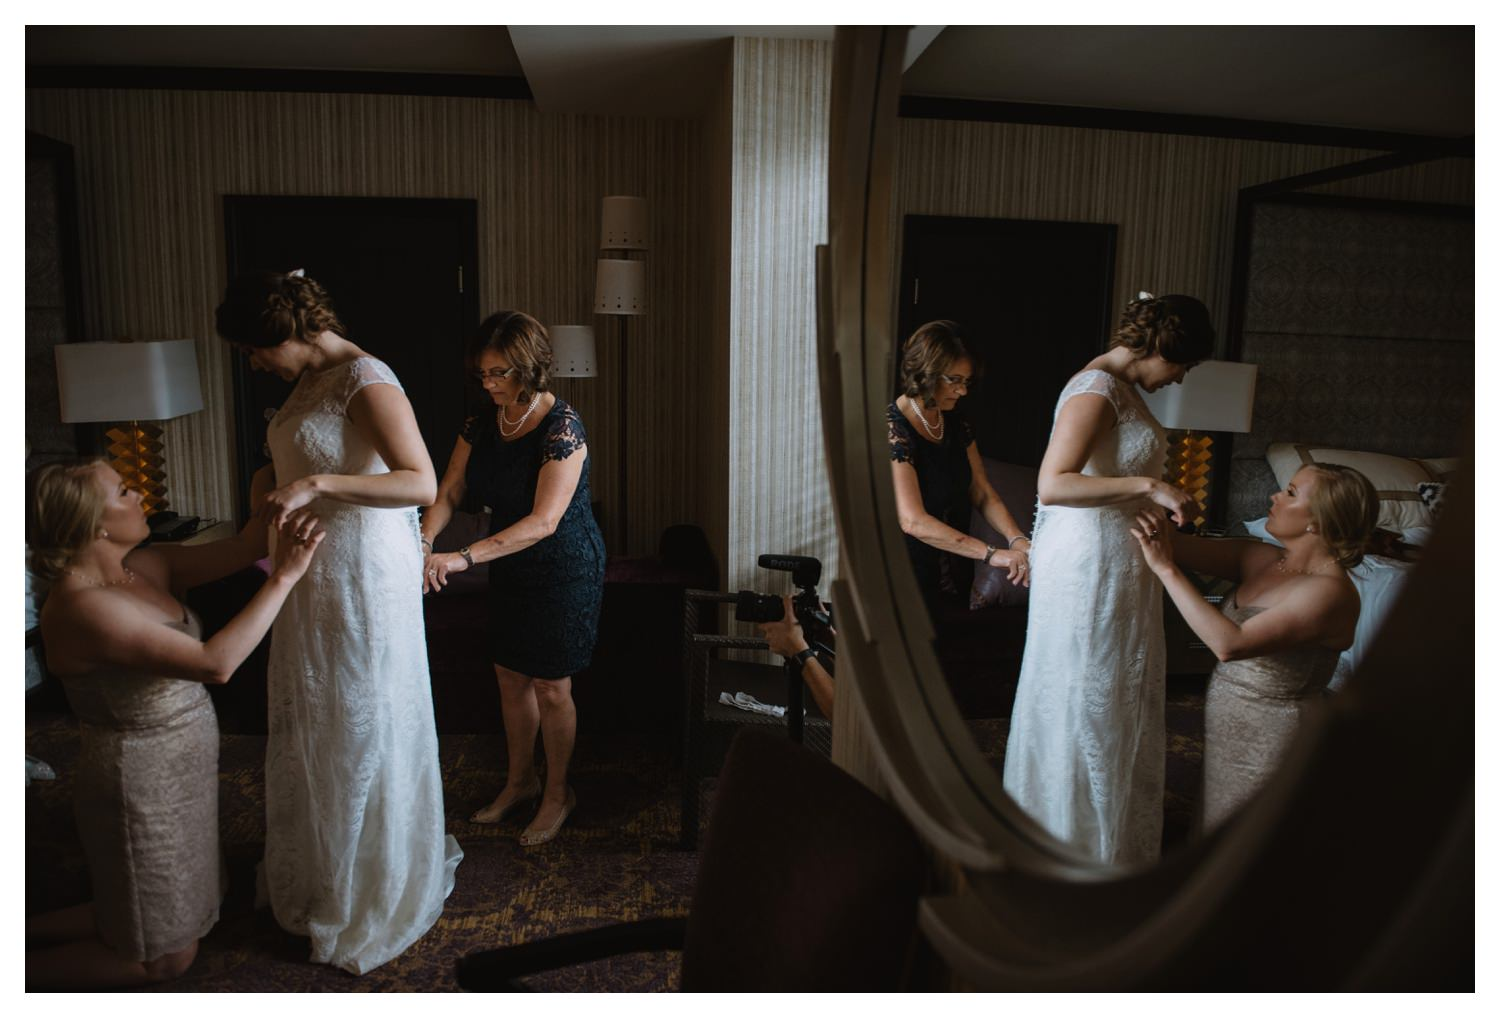 The reflection of a bride and her mother in a  mirror